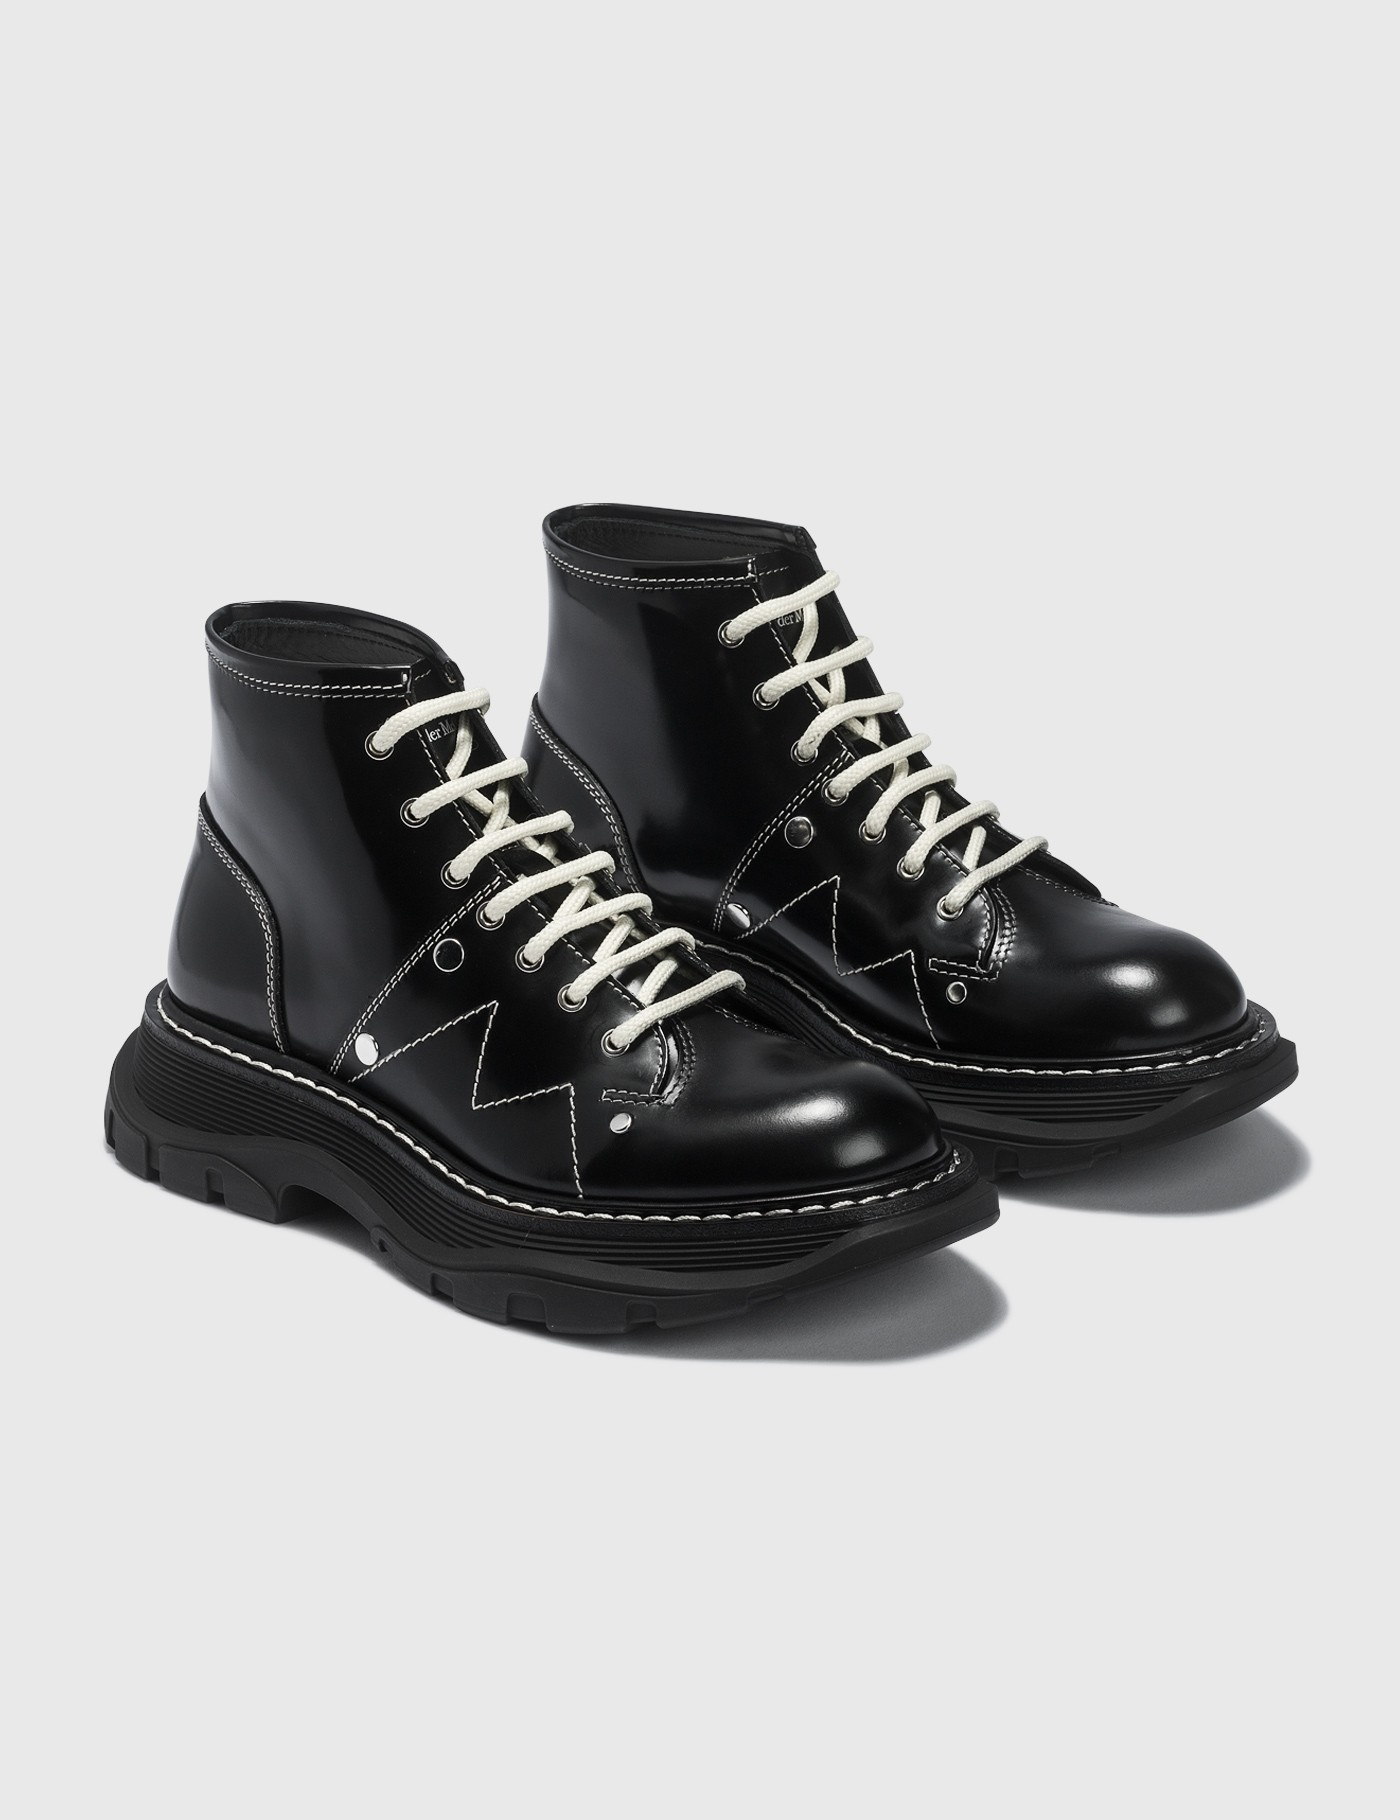 ALEXANDER MCQUEEN TREAD LACE UP BOOTS